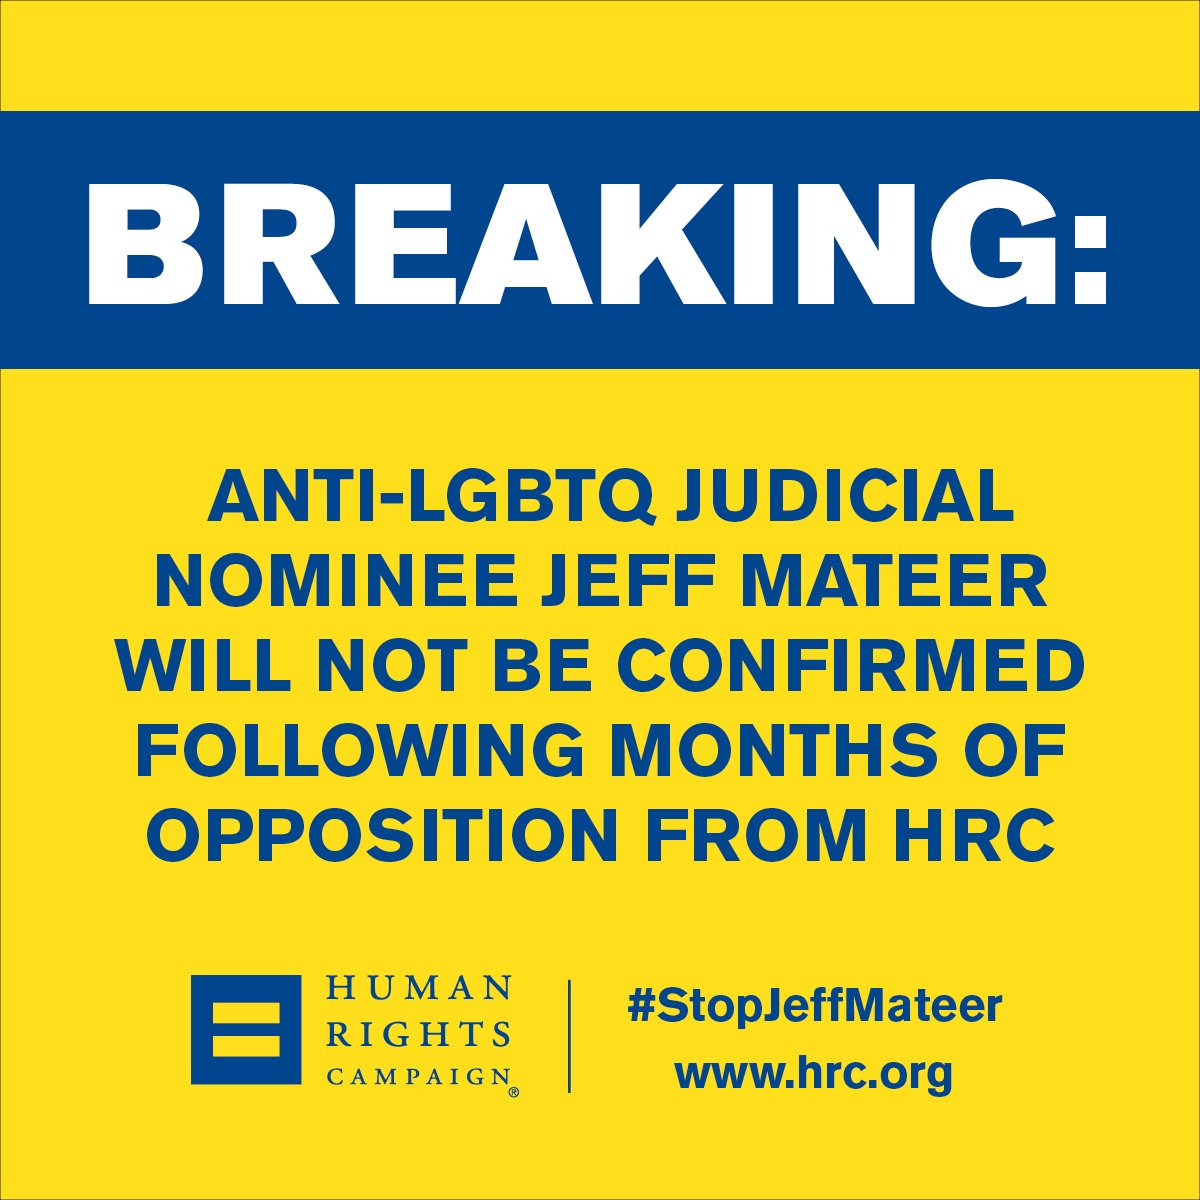 Since the day the Trump-Pence administration announced their intent to nominate Jeff Mateer to a lifetime judicial appointment, @HRC worked to expose his shameful anti-#LGBTQ rhetoric and the danger his nomination posed to our judicial system. https://t.co/7JdFEozgxu